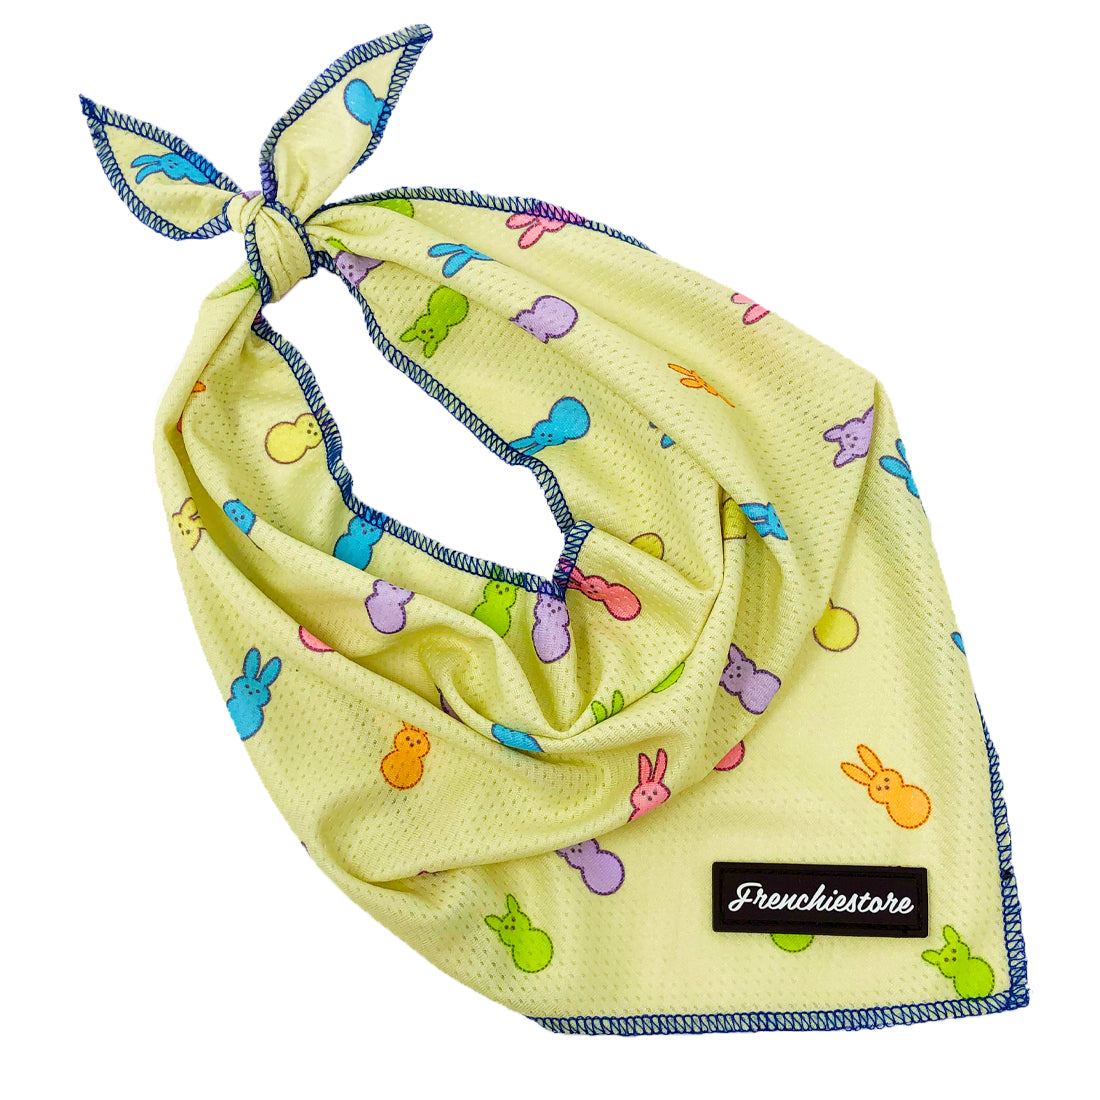 Frenchiestore Dog Cooling Bandana yellow easter bandana with Frenchie peeps